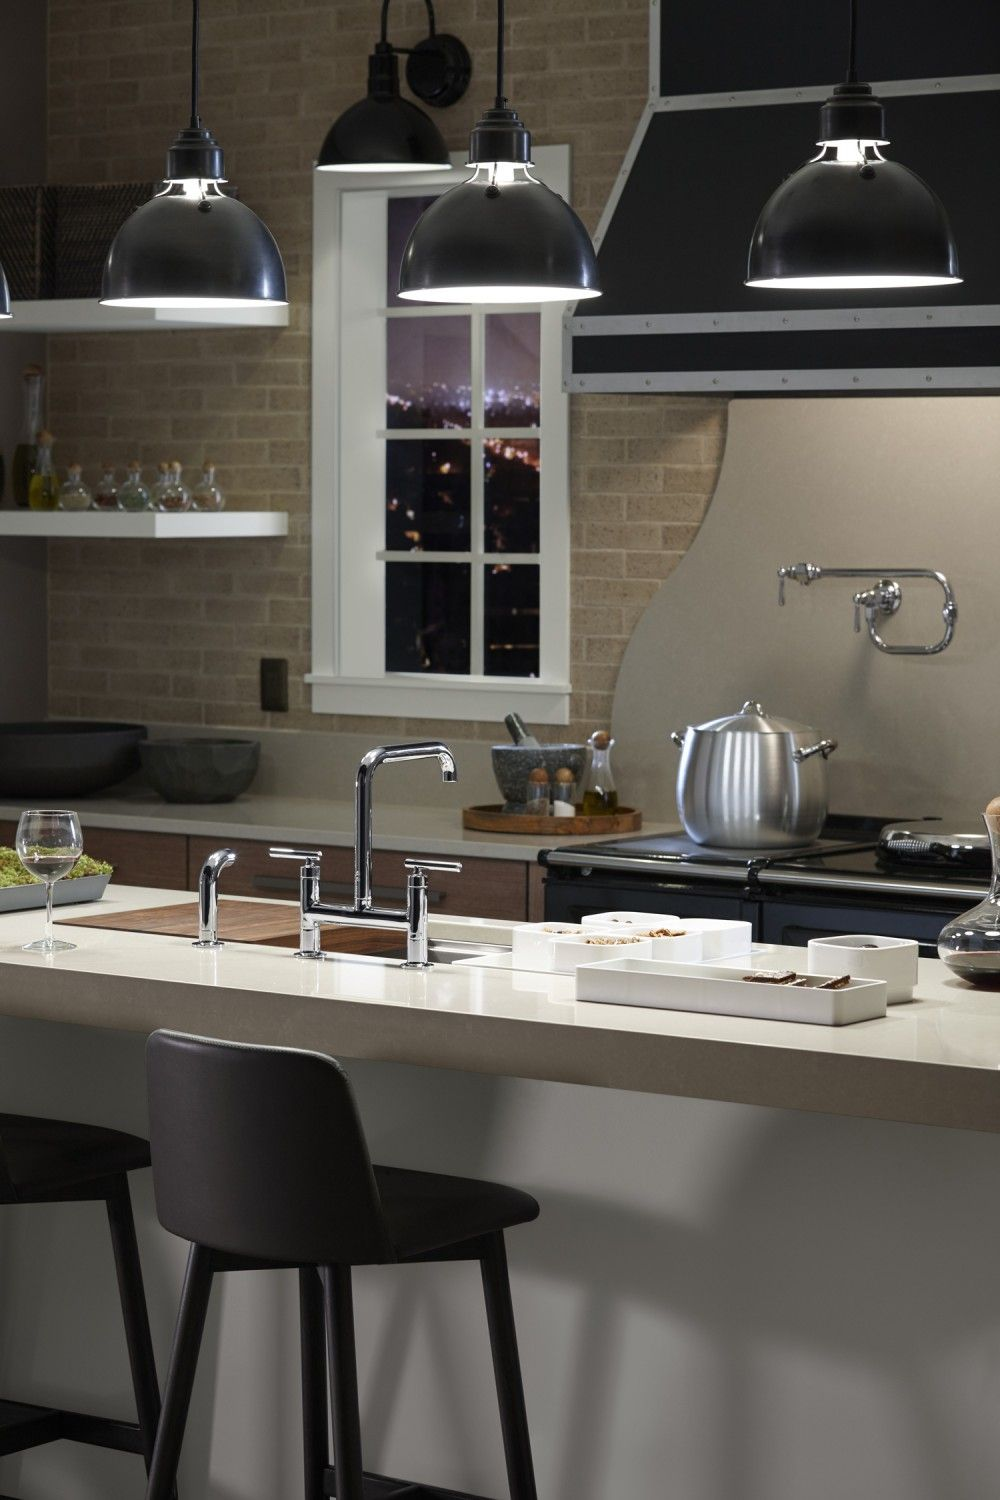 Latticed Luxe Kitchen | Industrial chic style, Loft kitchen and ...